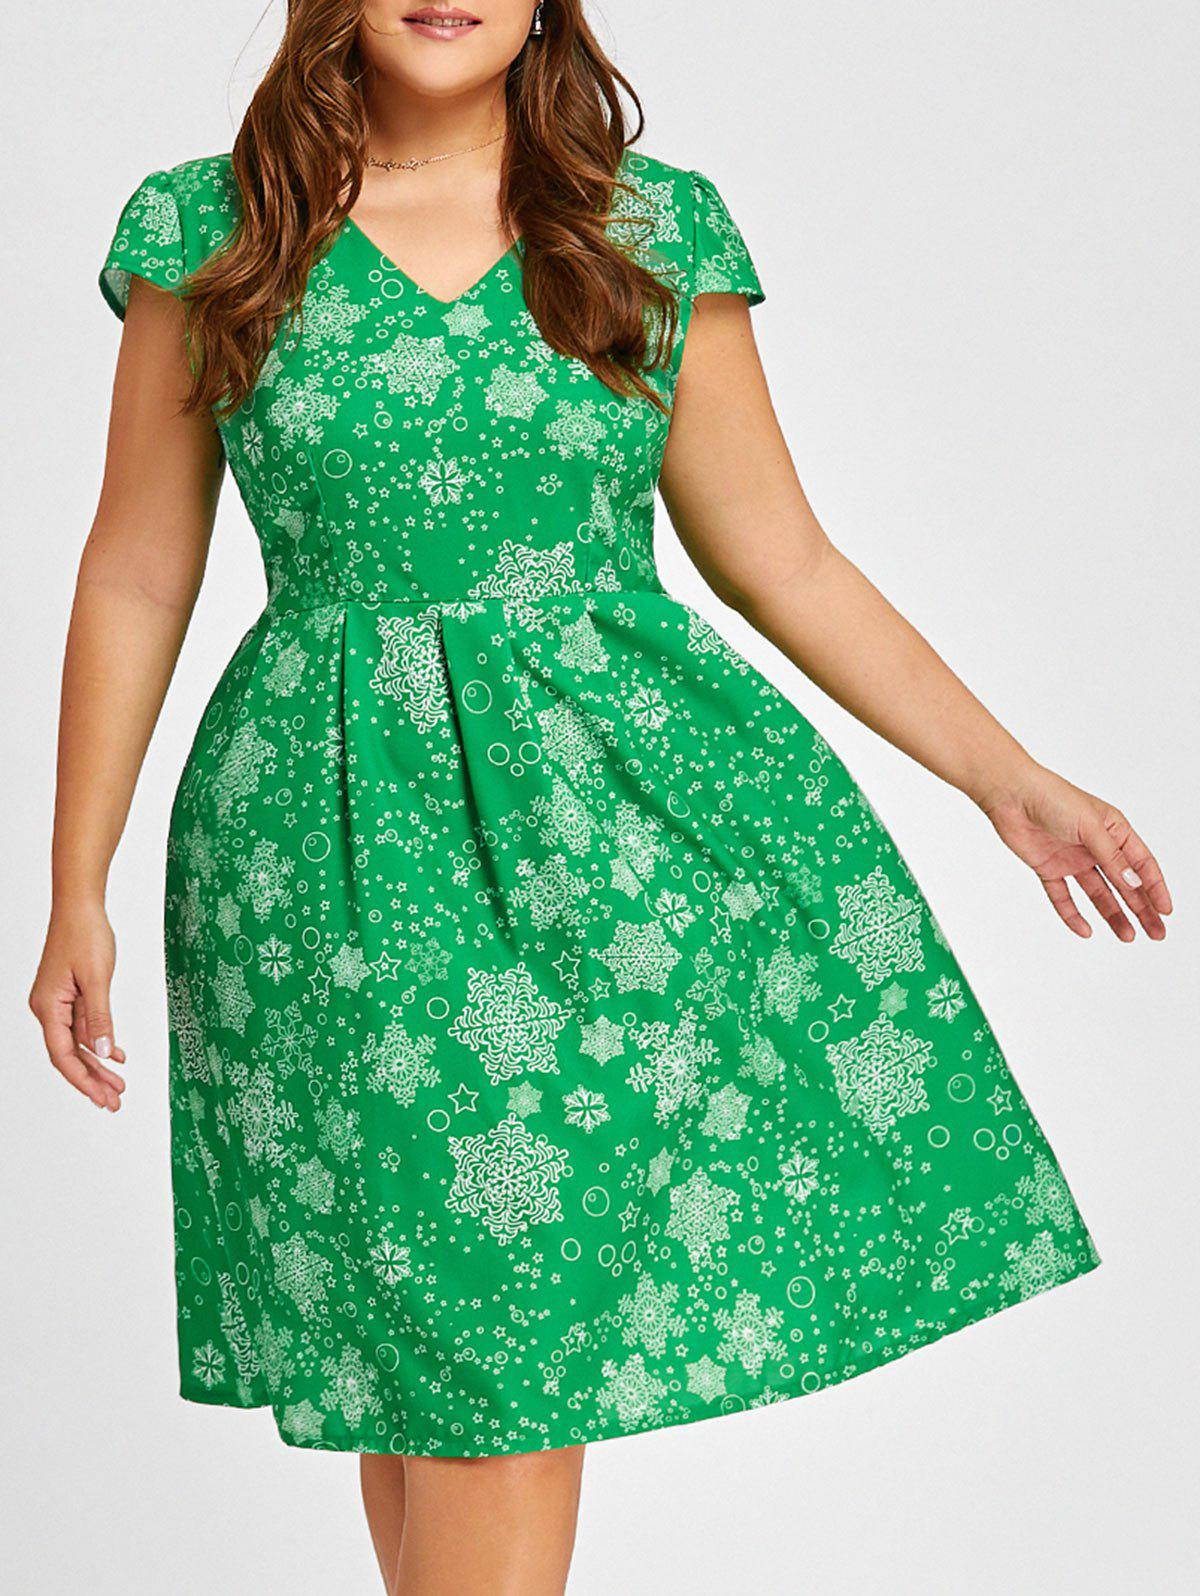 Christmas Snowflake V Neck Vintage Plus Size DressWOMEN<br><br>Size: 3XL; Color: GREEN; Style: Vintage; Material: Polyester; Silhouette: A-Line; Dresses Length: Knee-Length; Neckline: V-Neck; Sleeve Type: Cap Sleeve; Sleeve Length: Short Sleeves; Pattern Type: Print; With Belt: No; Season: Fall,Spring,Summer,Winter; Weight: 0.3050kg; Package Contents: 1 x Dress;